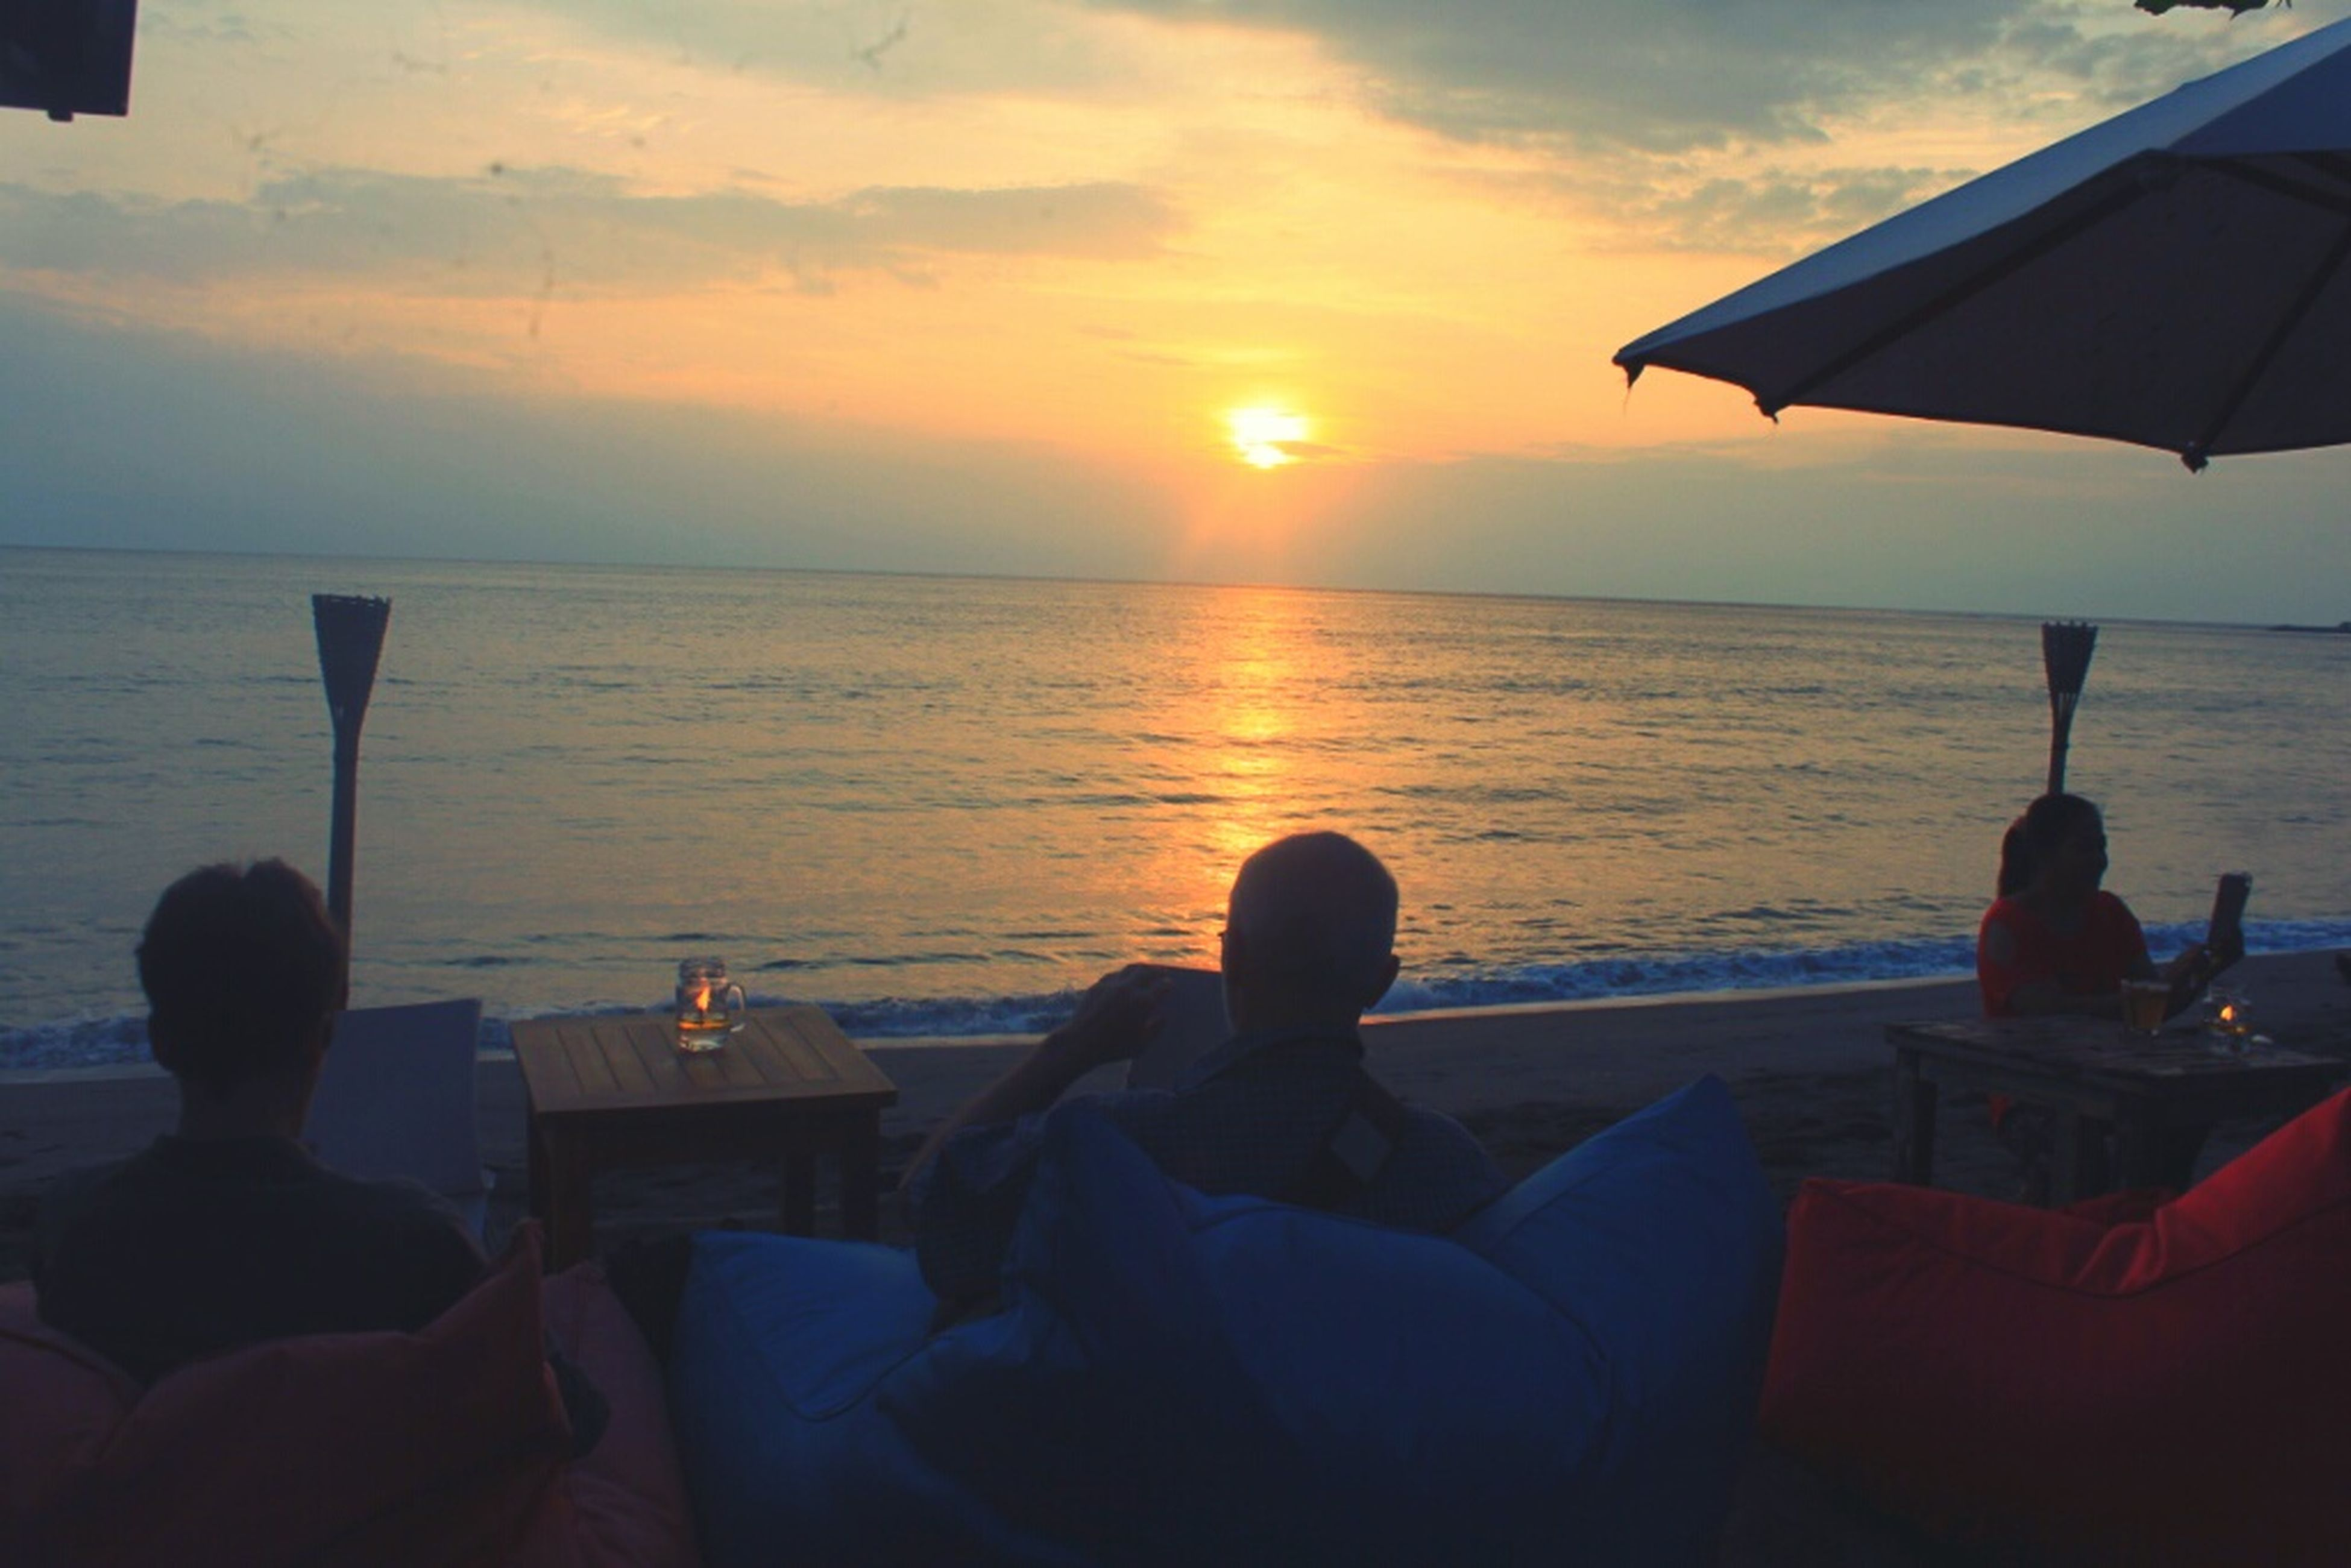 sea, horizon over water, water, sunset, sky, chair, sun, relaxation, scenics, lifestyles, sitting, vacations, person, leisure activity, beach, tranquil scene, beauty in nature, men, restaurant